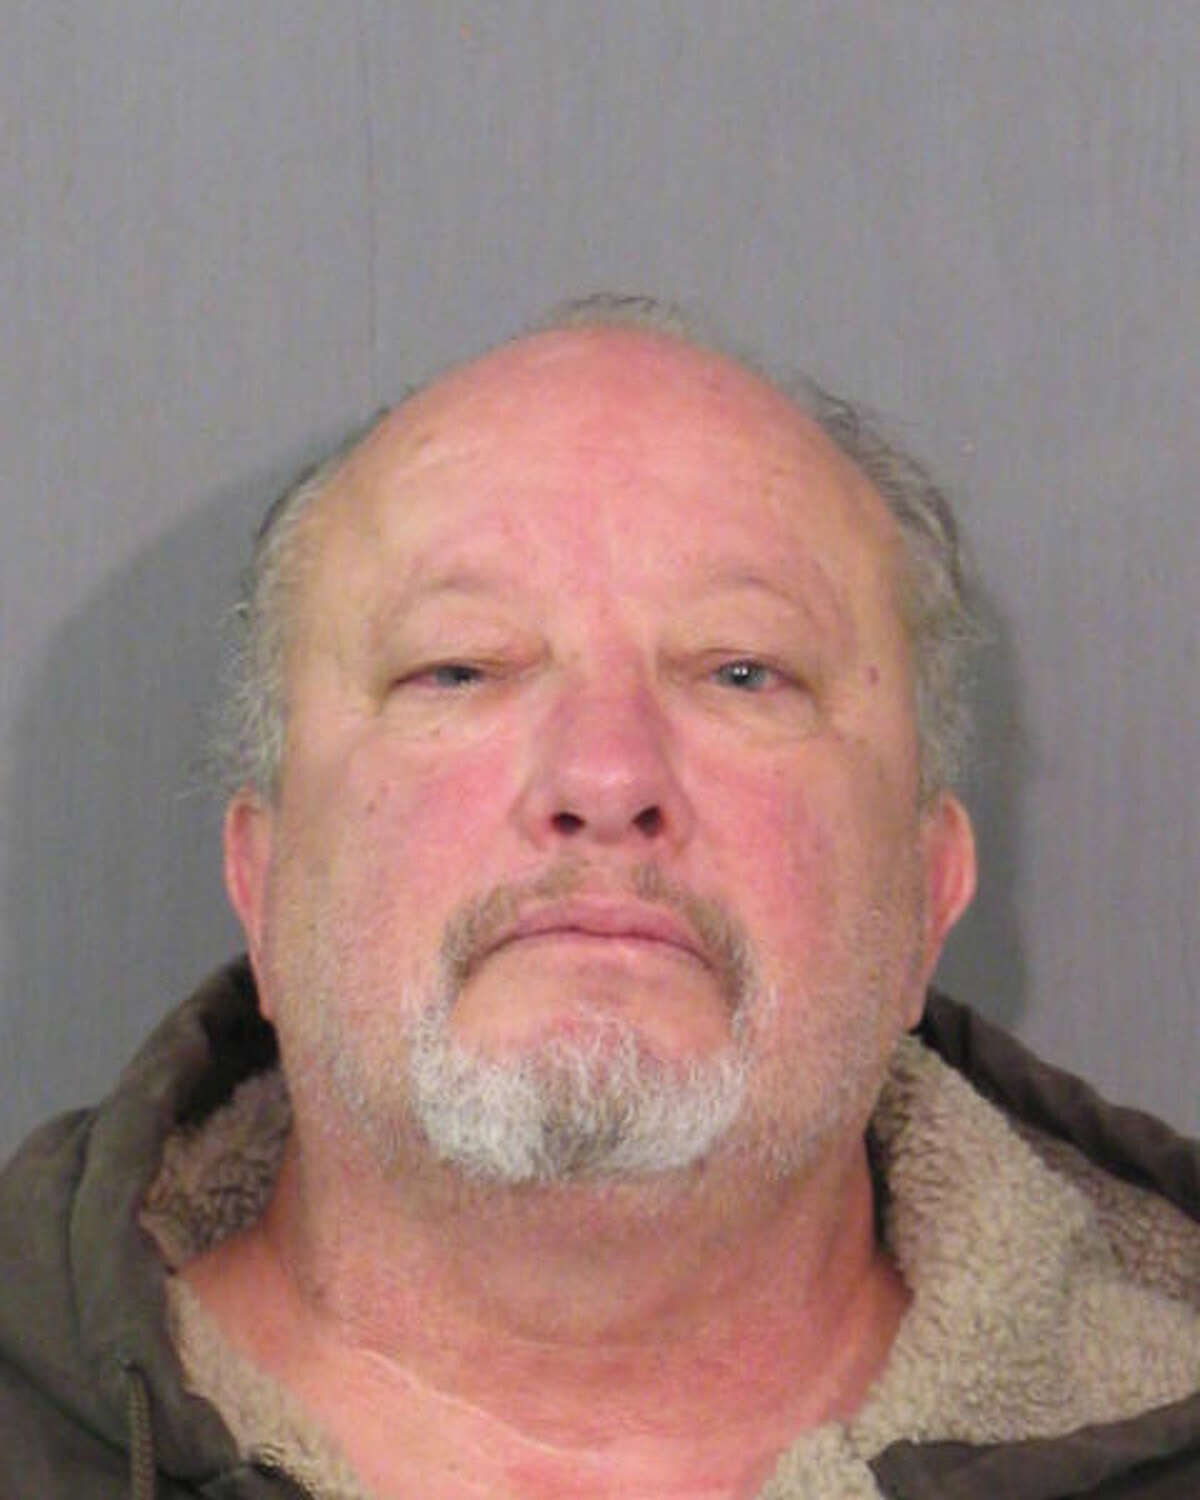 George Pickering was charged with aggravated assault.